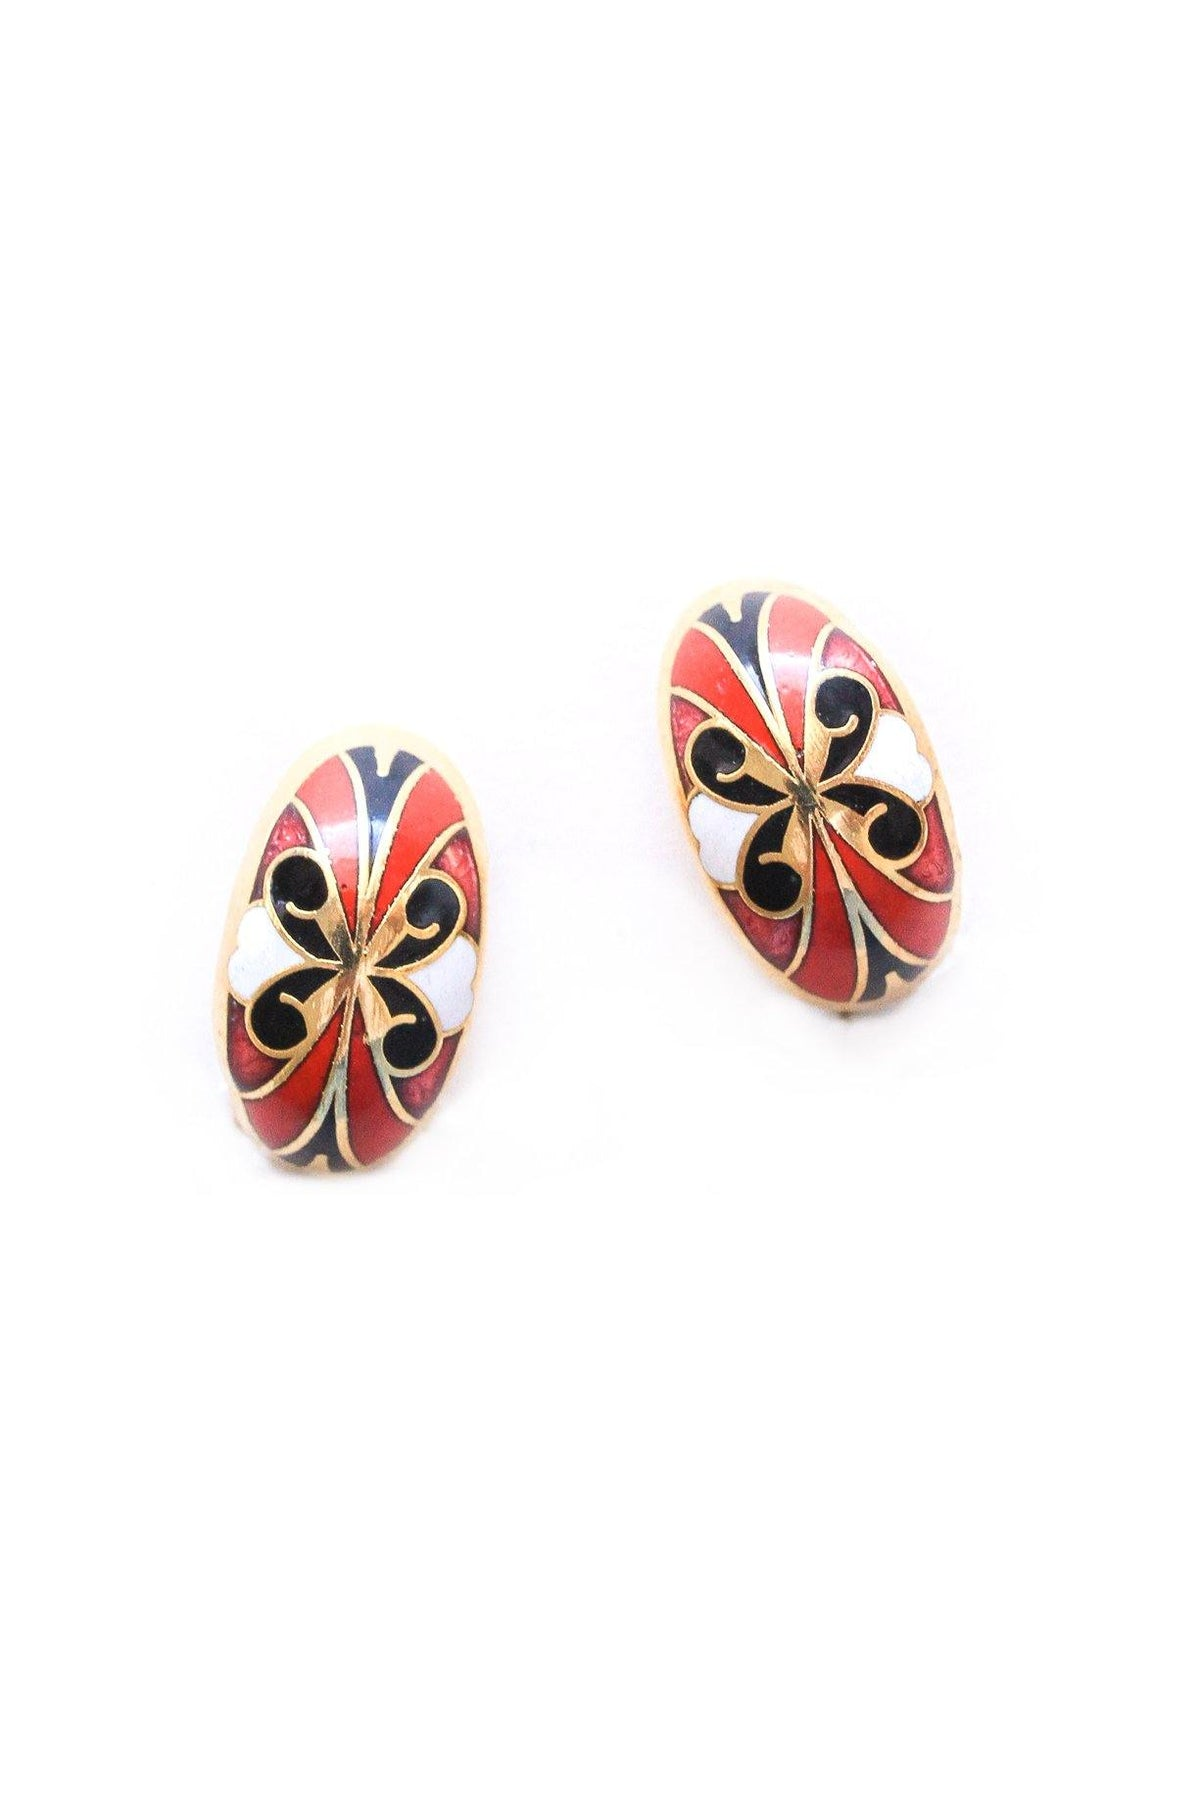 Vintage painted butterfly earrings from Sweet & Spark.